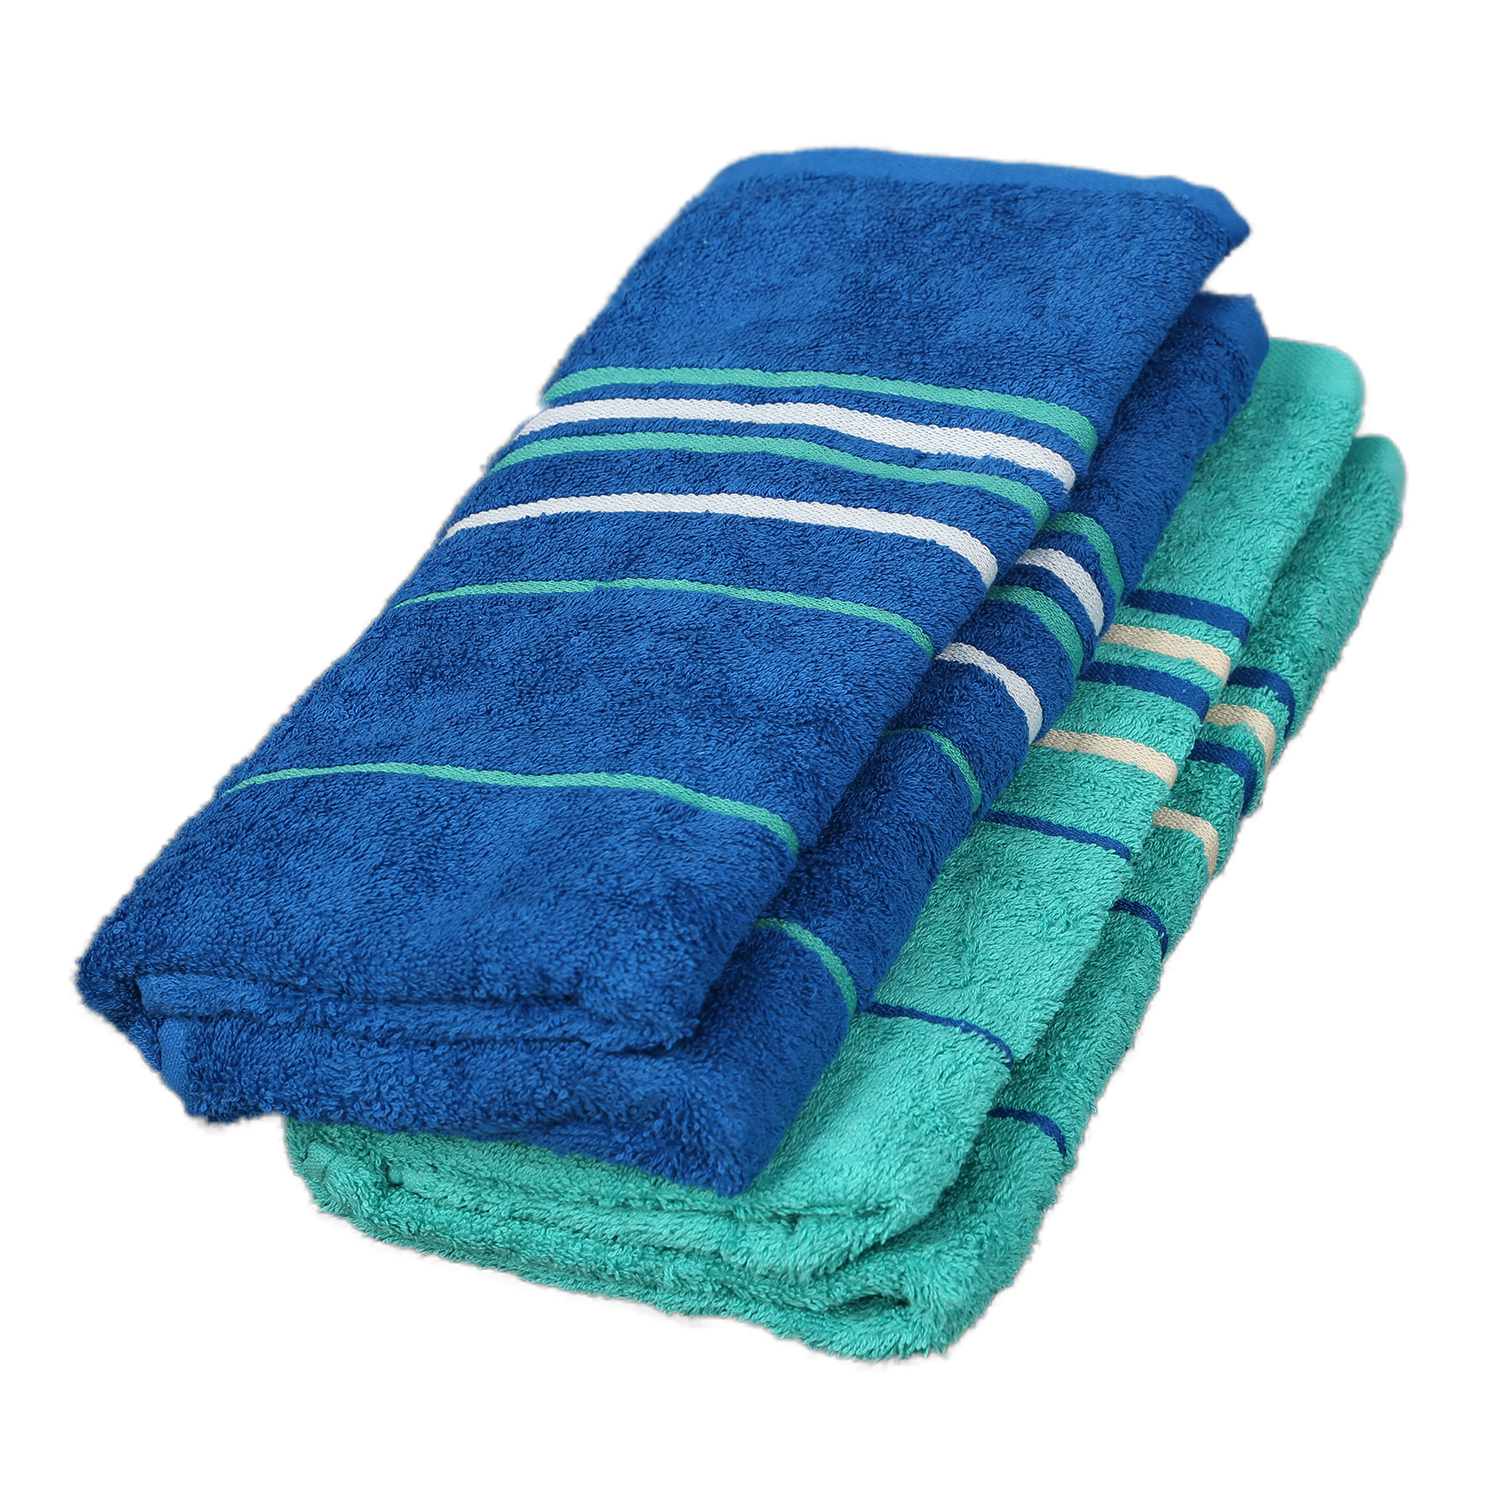 Emilia Bath Towel Teal & Blue Carded Cotton Bath Towels in Teal & Blue Colour by Living Essence